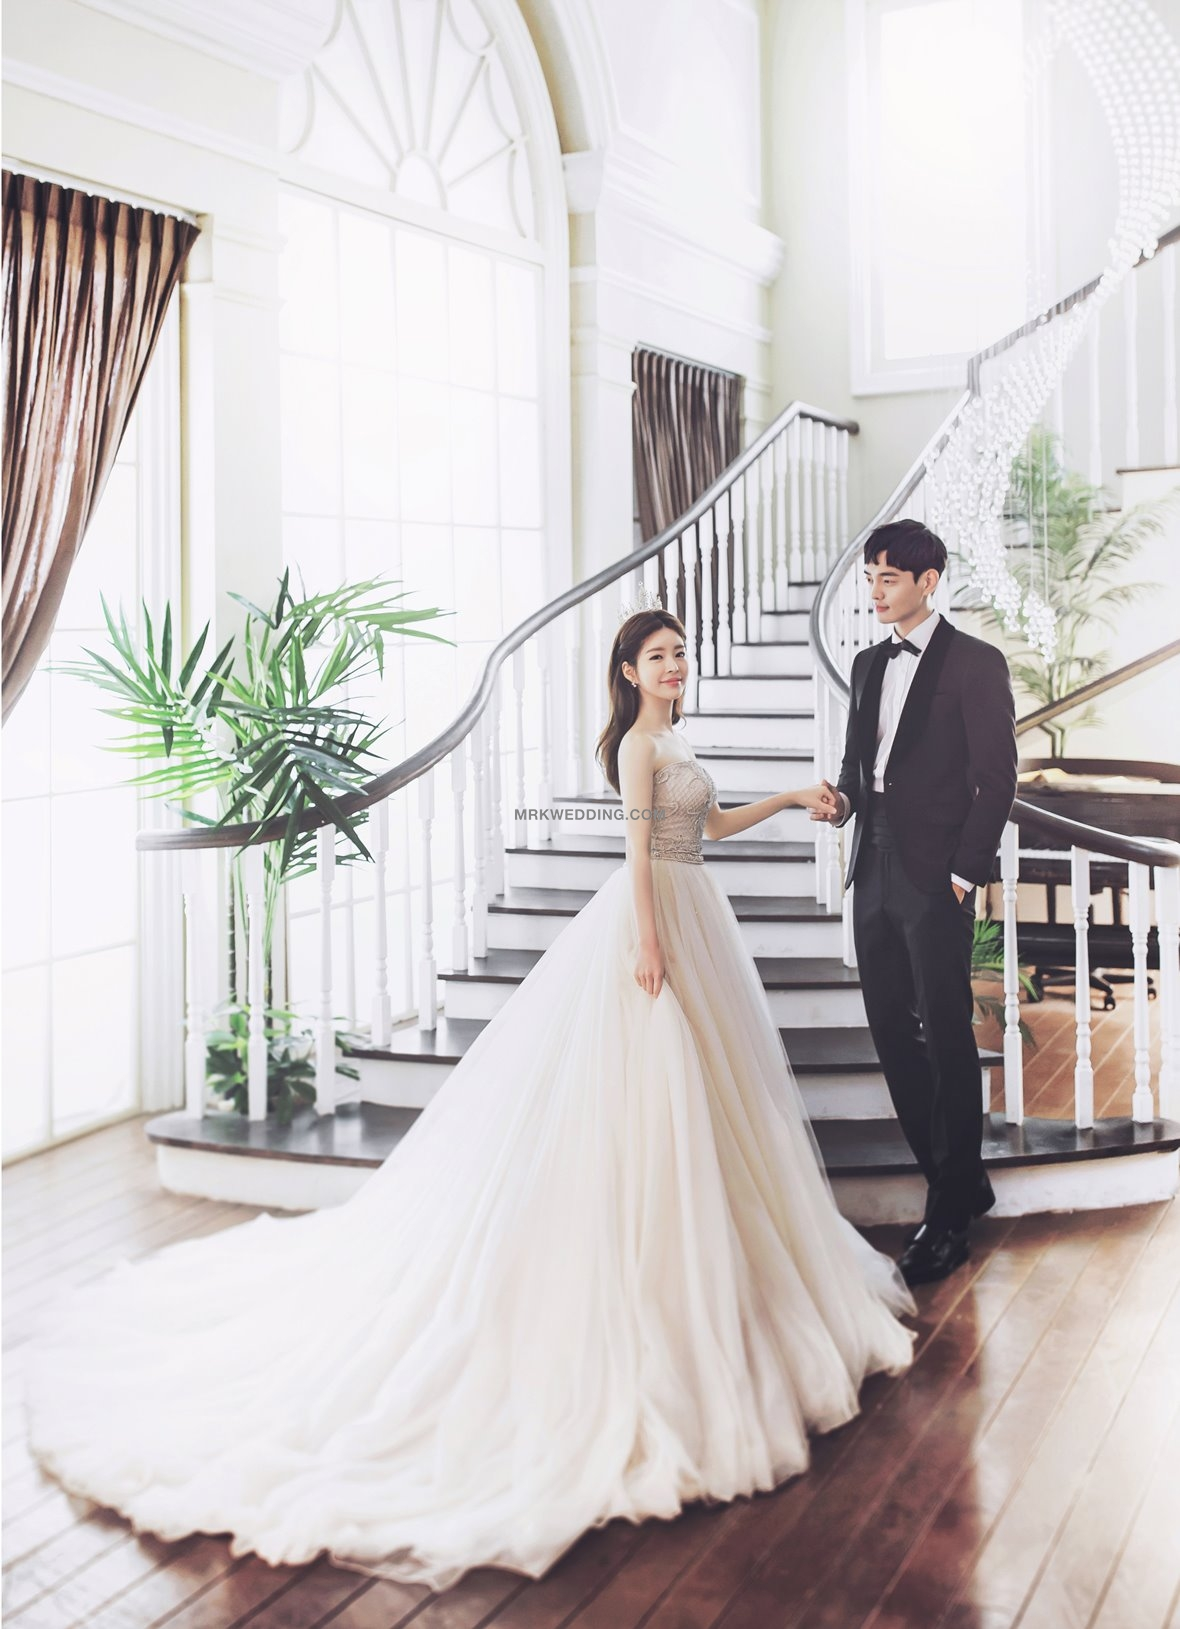 #koreaprewedding (6).jpg